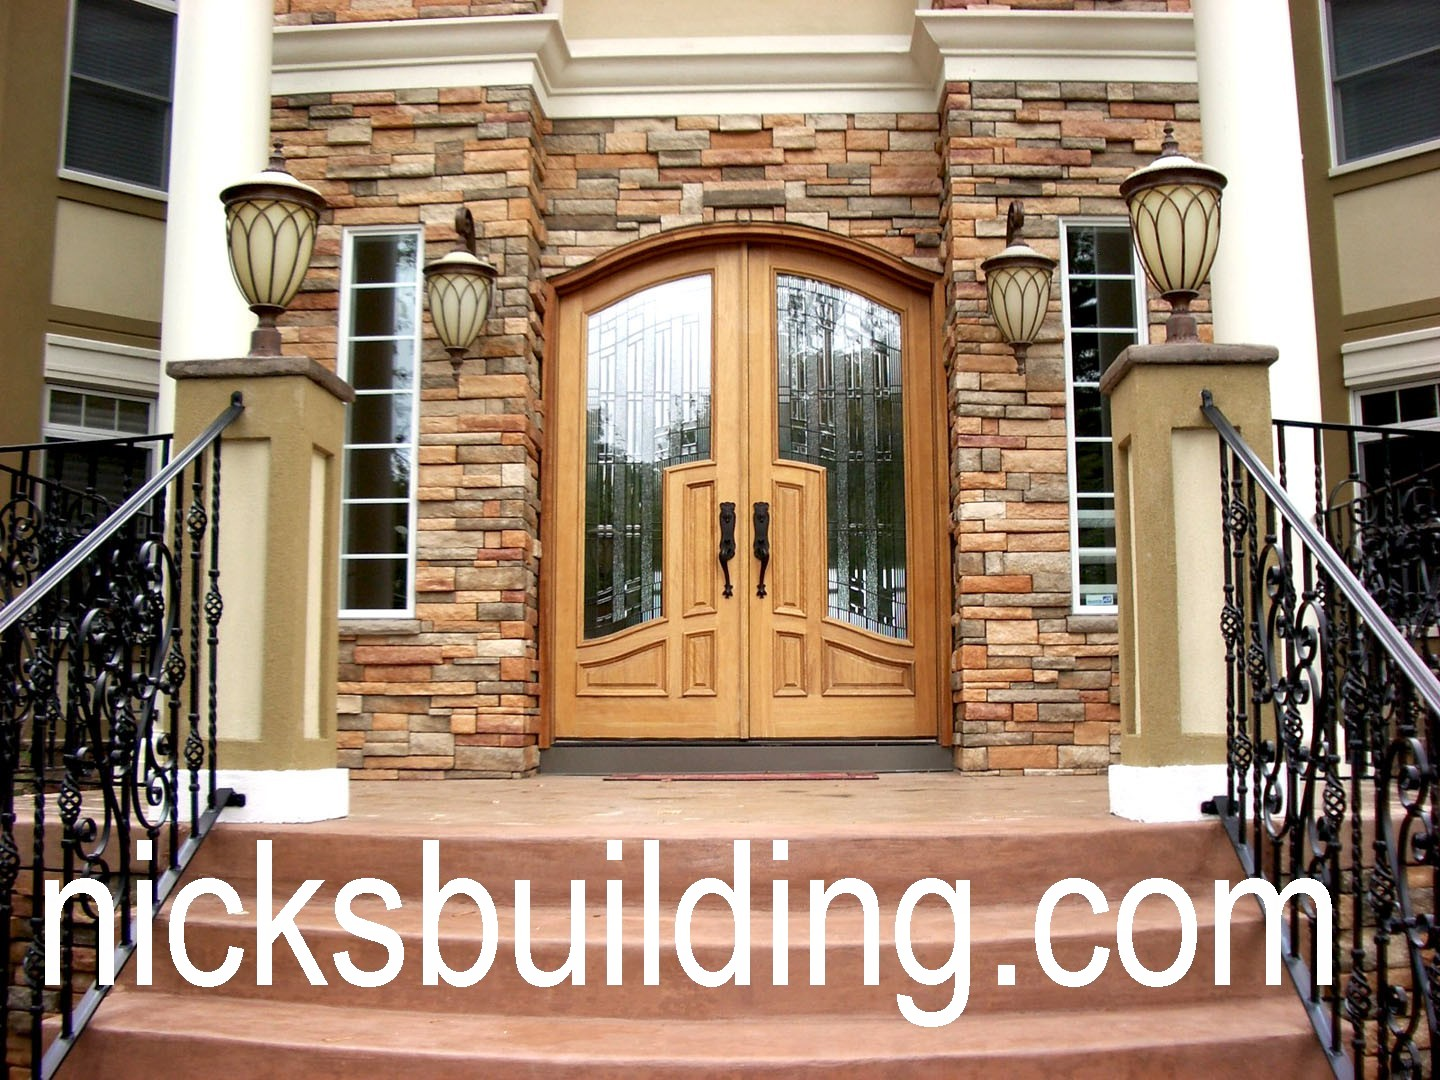 1080 #976534 ROUND TOP EXTERIOR DOORS ARCHED ENTRY DOORS ARCH TOP FRONT DOORS  pic Round Top Exterior Doors 39811440